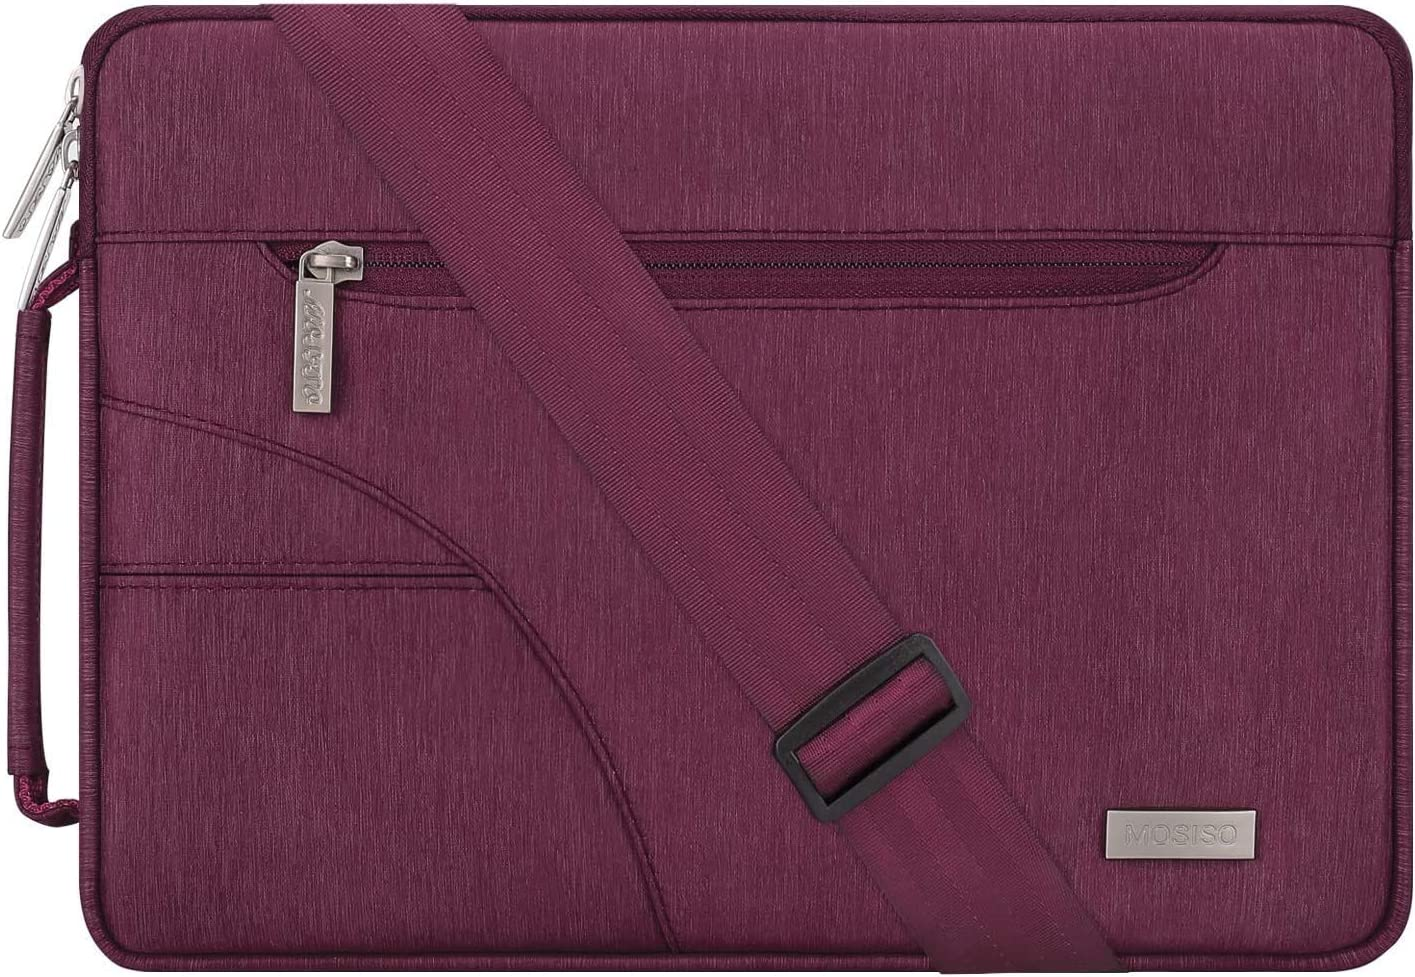 MOSISO Laptop Shoulder Bag Compatible with 13-13.3 inch MacBook Pro, MacBook Air, Notebook Computer, Polyester Briefcase Sleeve with Side Handle, Burgundy